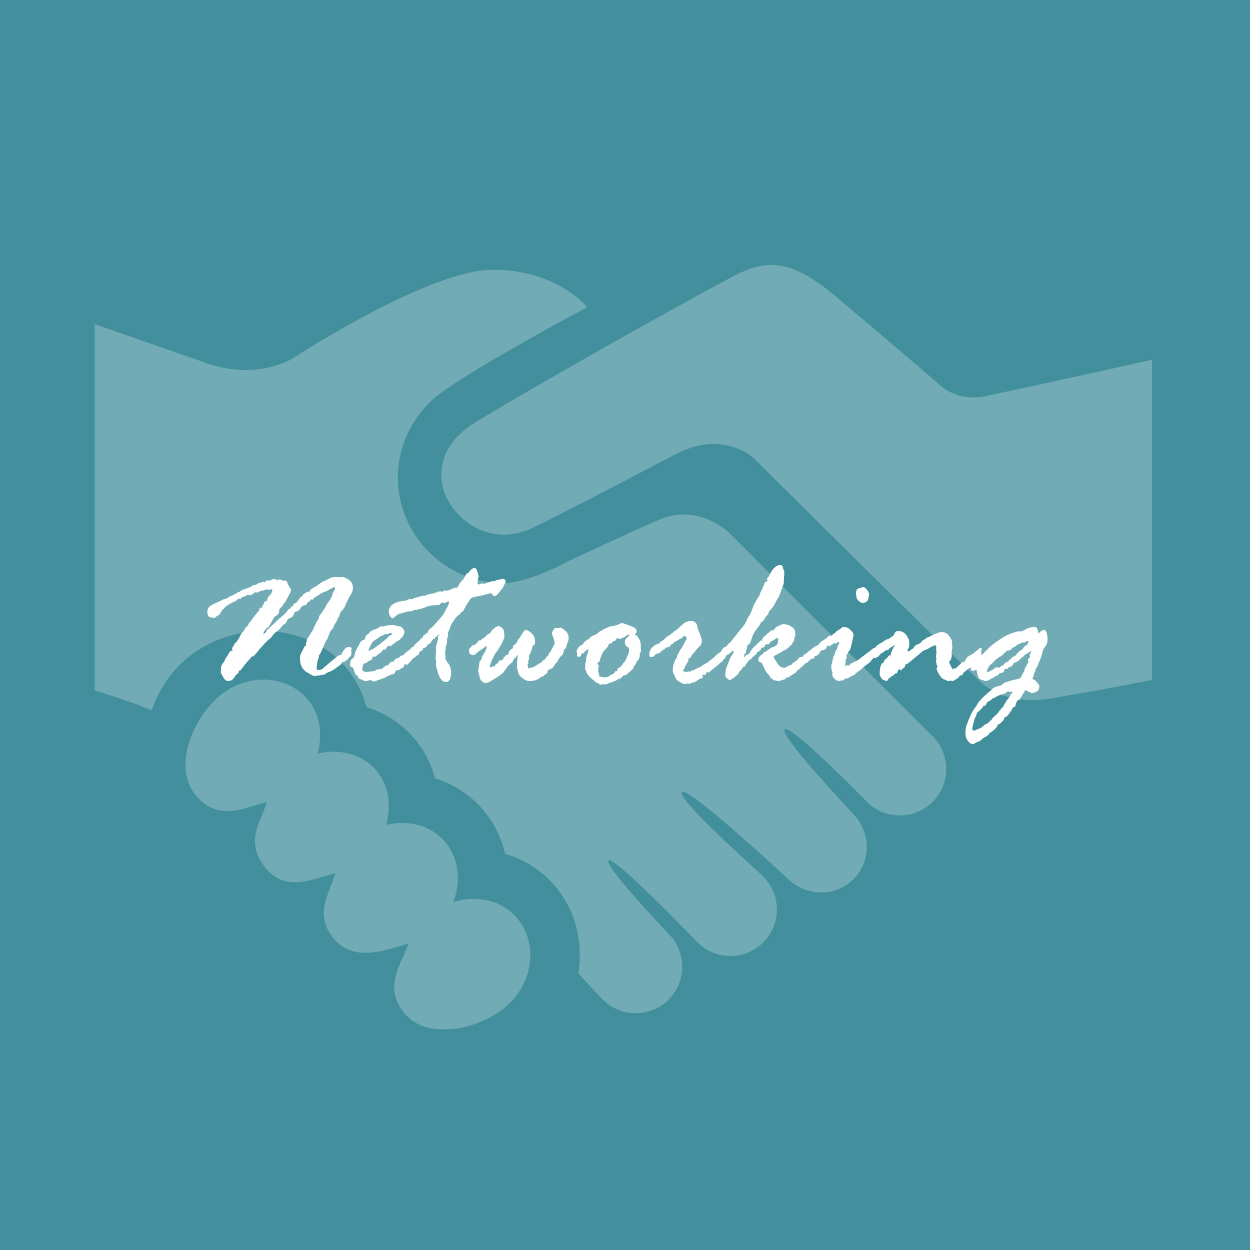 Networking Sticker